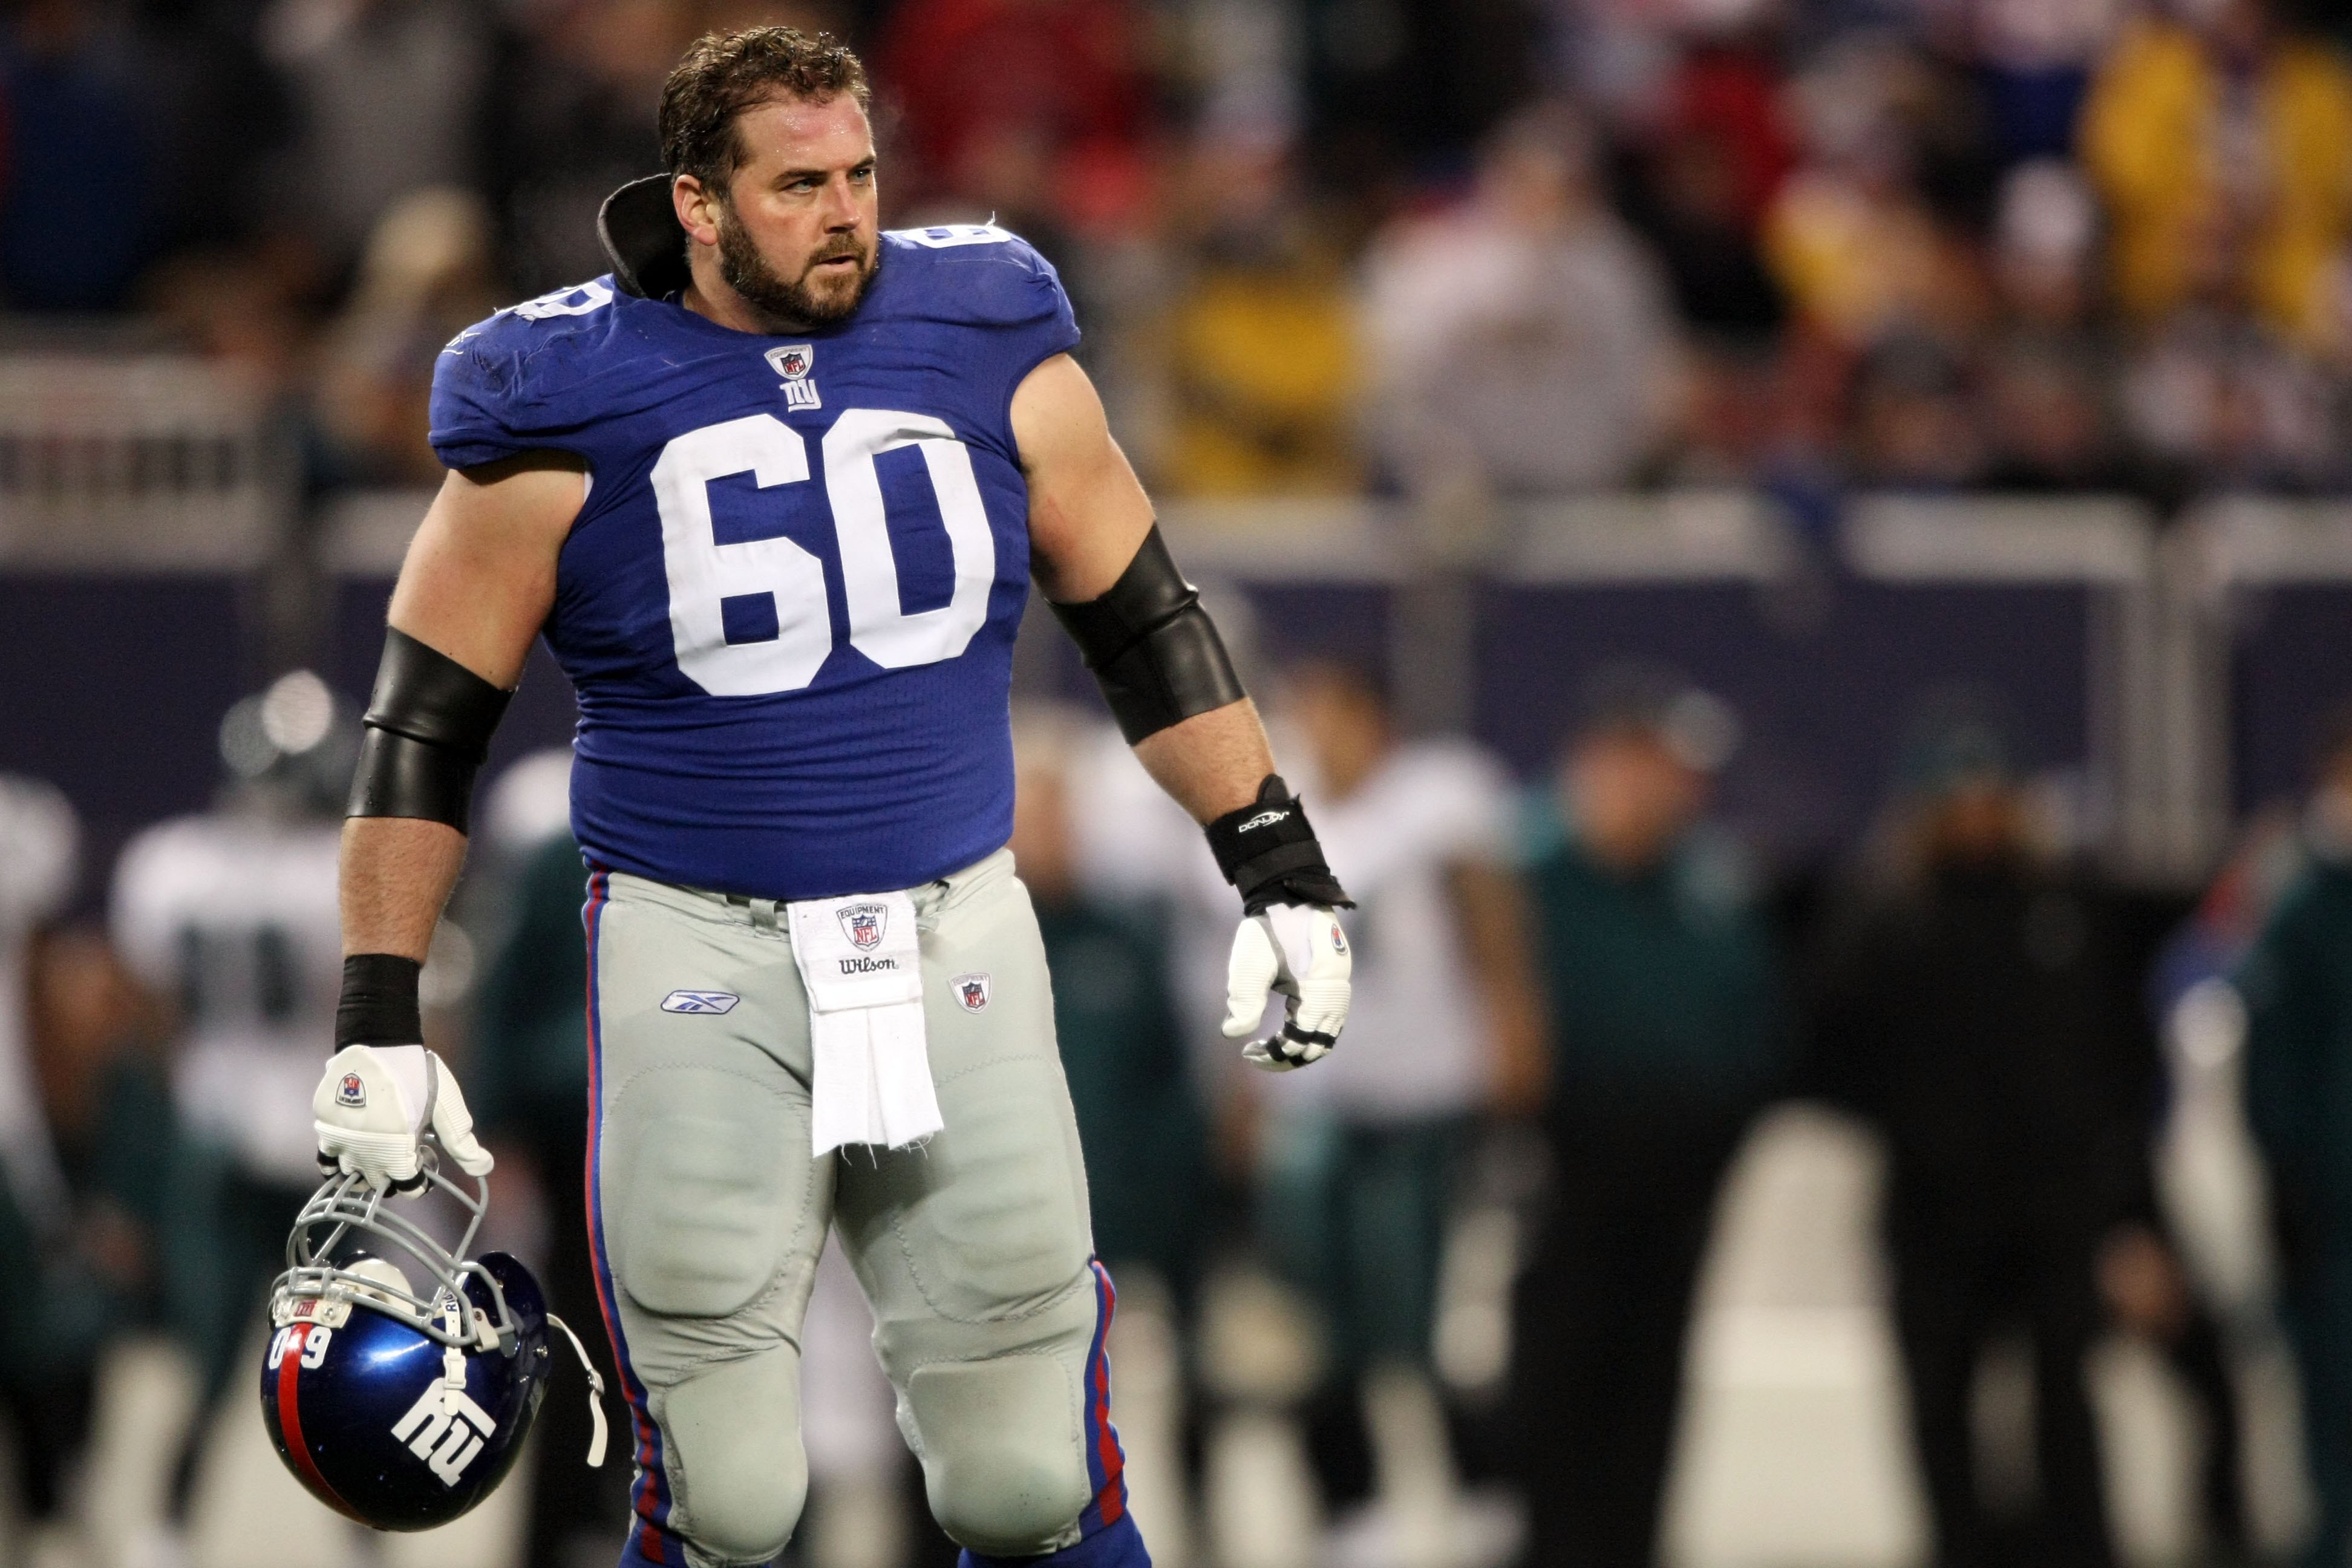 EAST RUTHERFORD, NJ - DECEMBER 13:  Shaun O'Hara #60 of the New York Giants looks on against  the Philadelphia Eagles at Giants Stadium on December 13, 2009 in East Rutherford, New Jersey.  (Photo by Nick Laham/Getty Images)